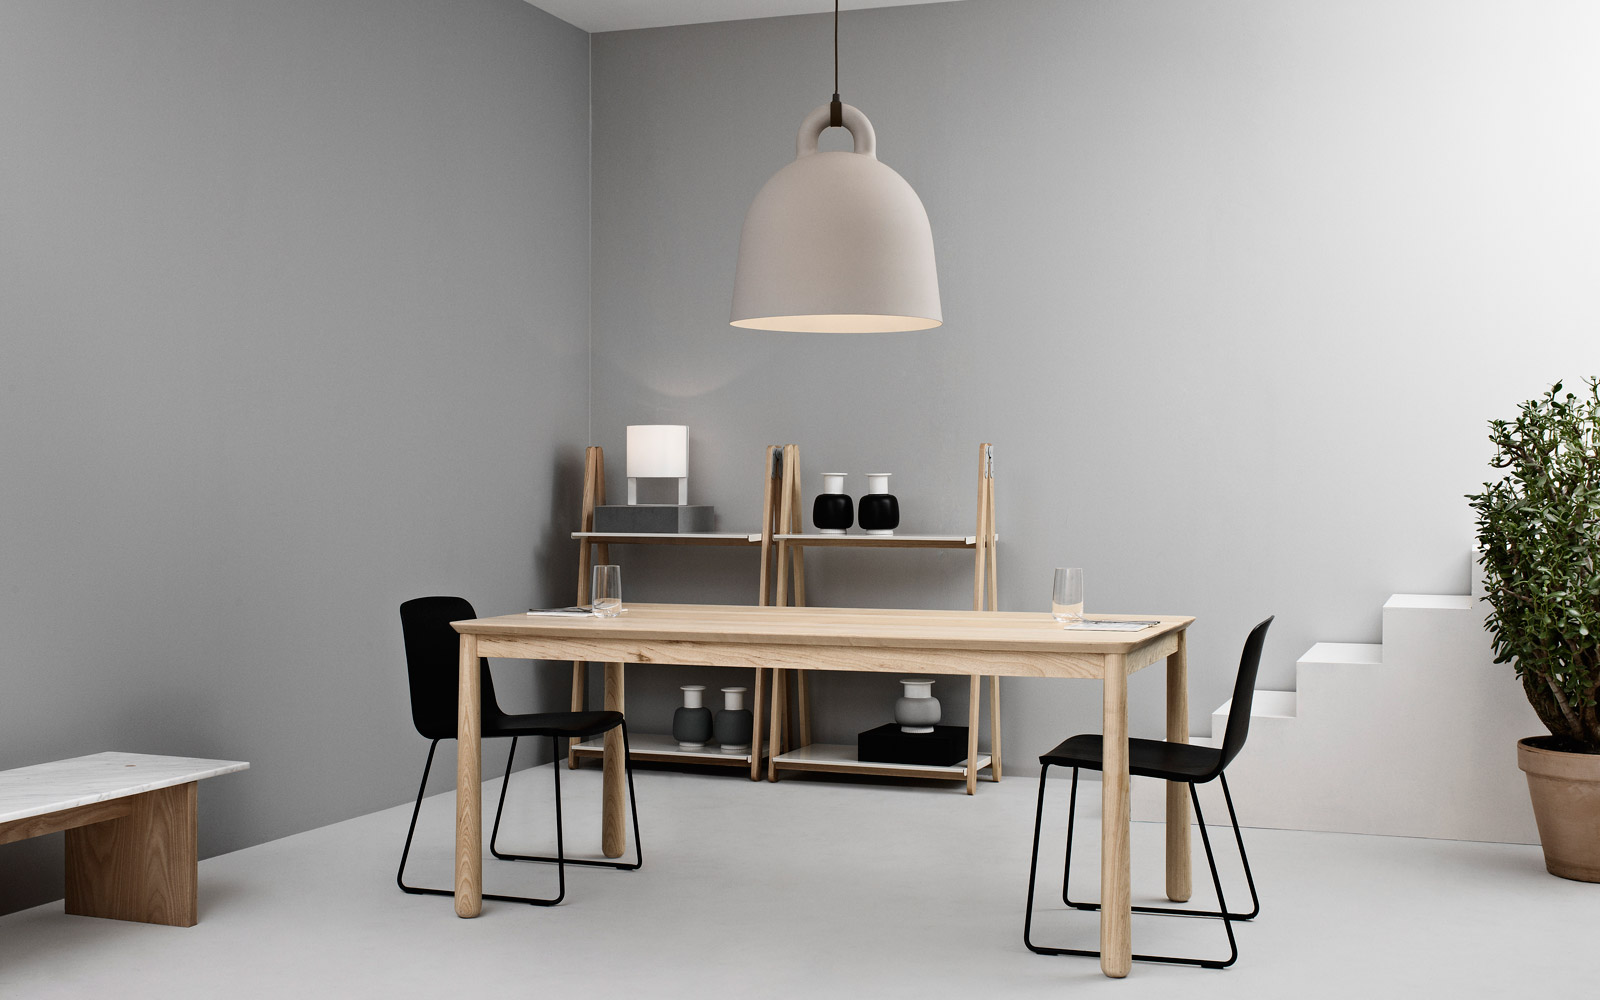 bell taklampe x small sand normann copenhagen 2rom. Black Bedroom Furniture Sets. Home Design Ideas